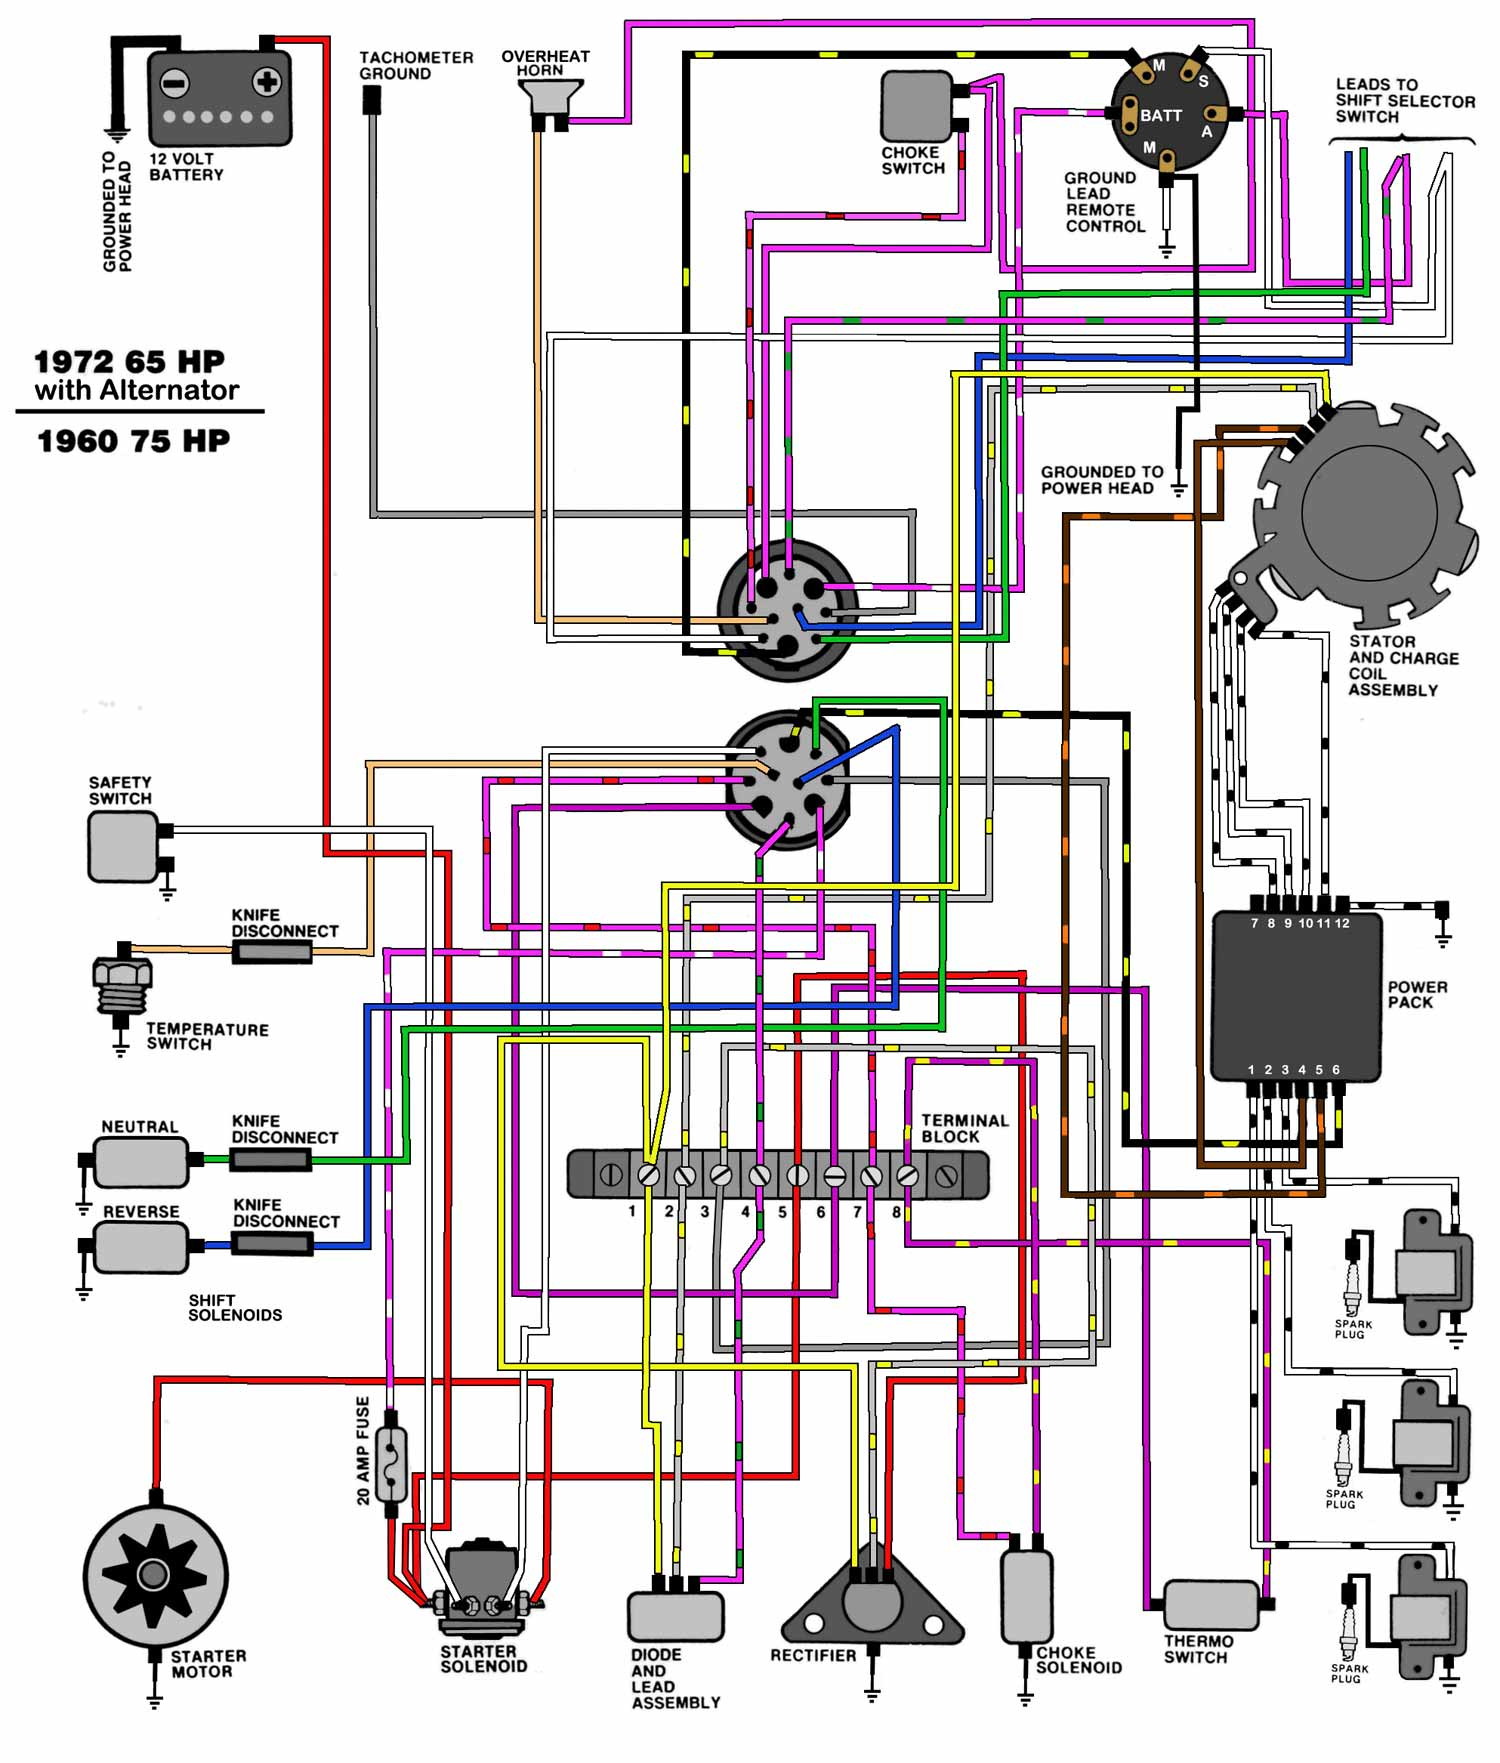 EVINRUDE JOHNSON Outboard Wiring Diagrams -- MASTERTECH ... on friendship bracelet diagrams, sincgars radio configurations diagrams, honda motorcycle repair diagrams, electronic circuit diagrams, pinout diagrams, switch diagrams, troubleshooting diagrams, internet of things diagrams, engine diagrams, led circuit diagrams, hvac diagrams, lighting diagrams, gmc fuse box diagrams, series and parallel circuits diagrams, electrical diagrams, battery diagrams, smart car diagrams, motor diagrams, transformer diagrams,